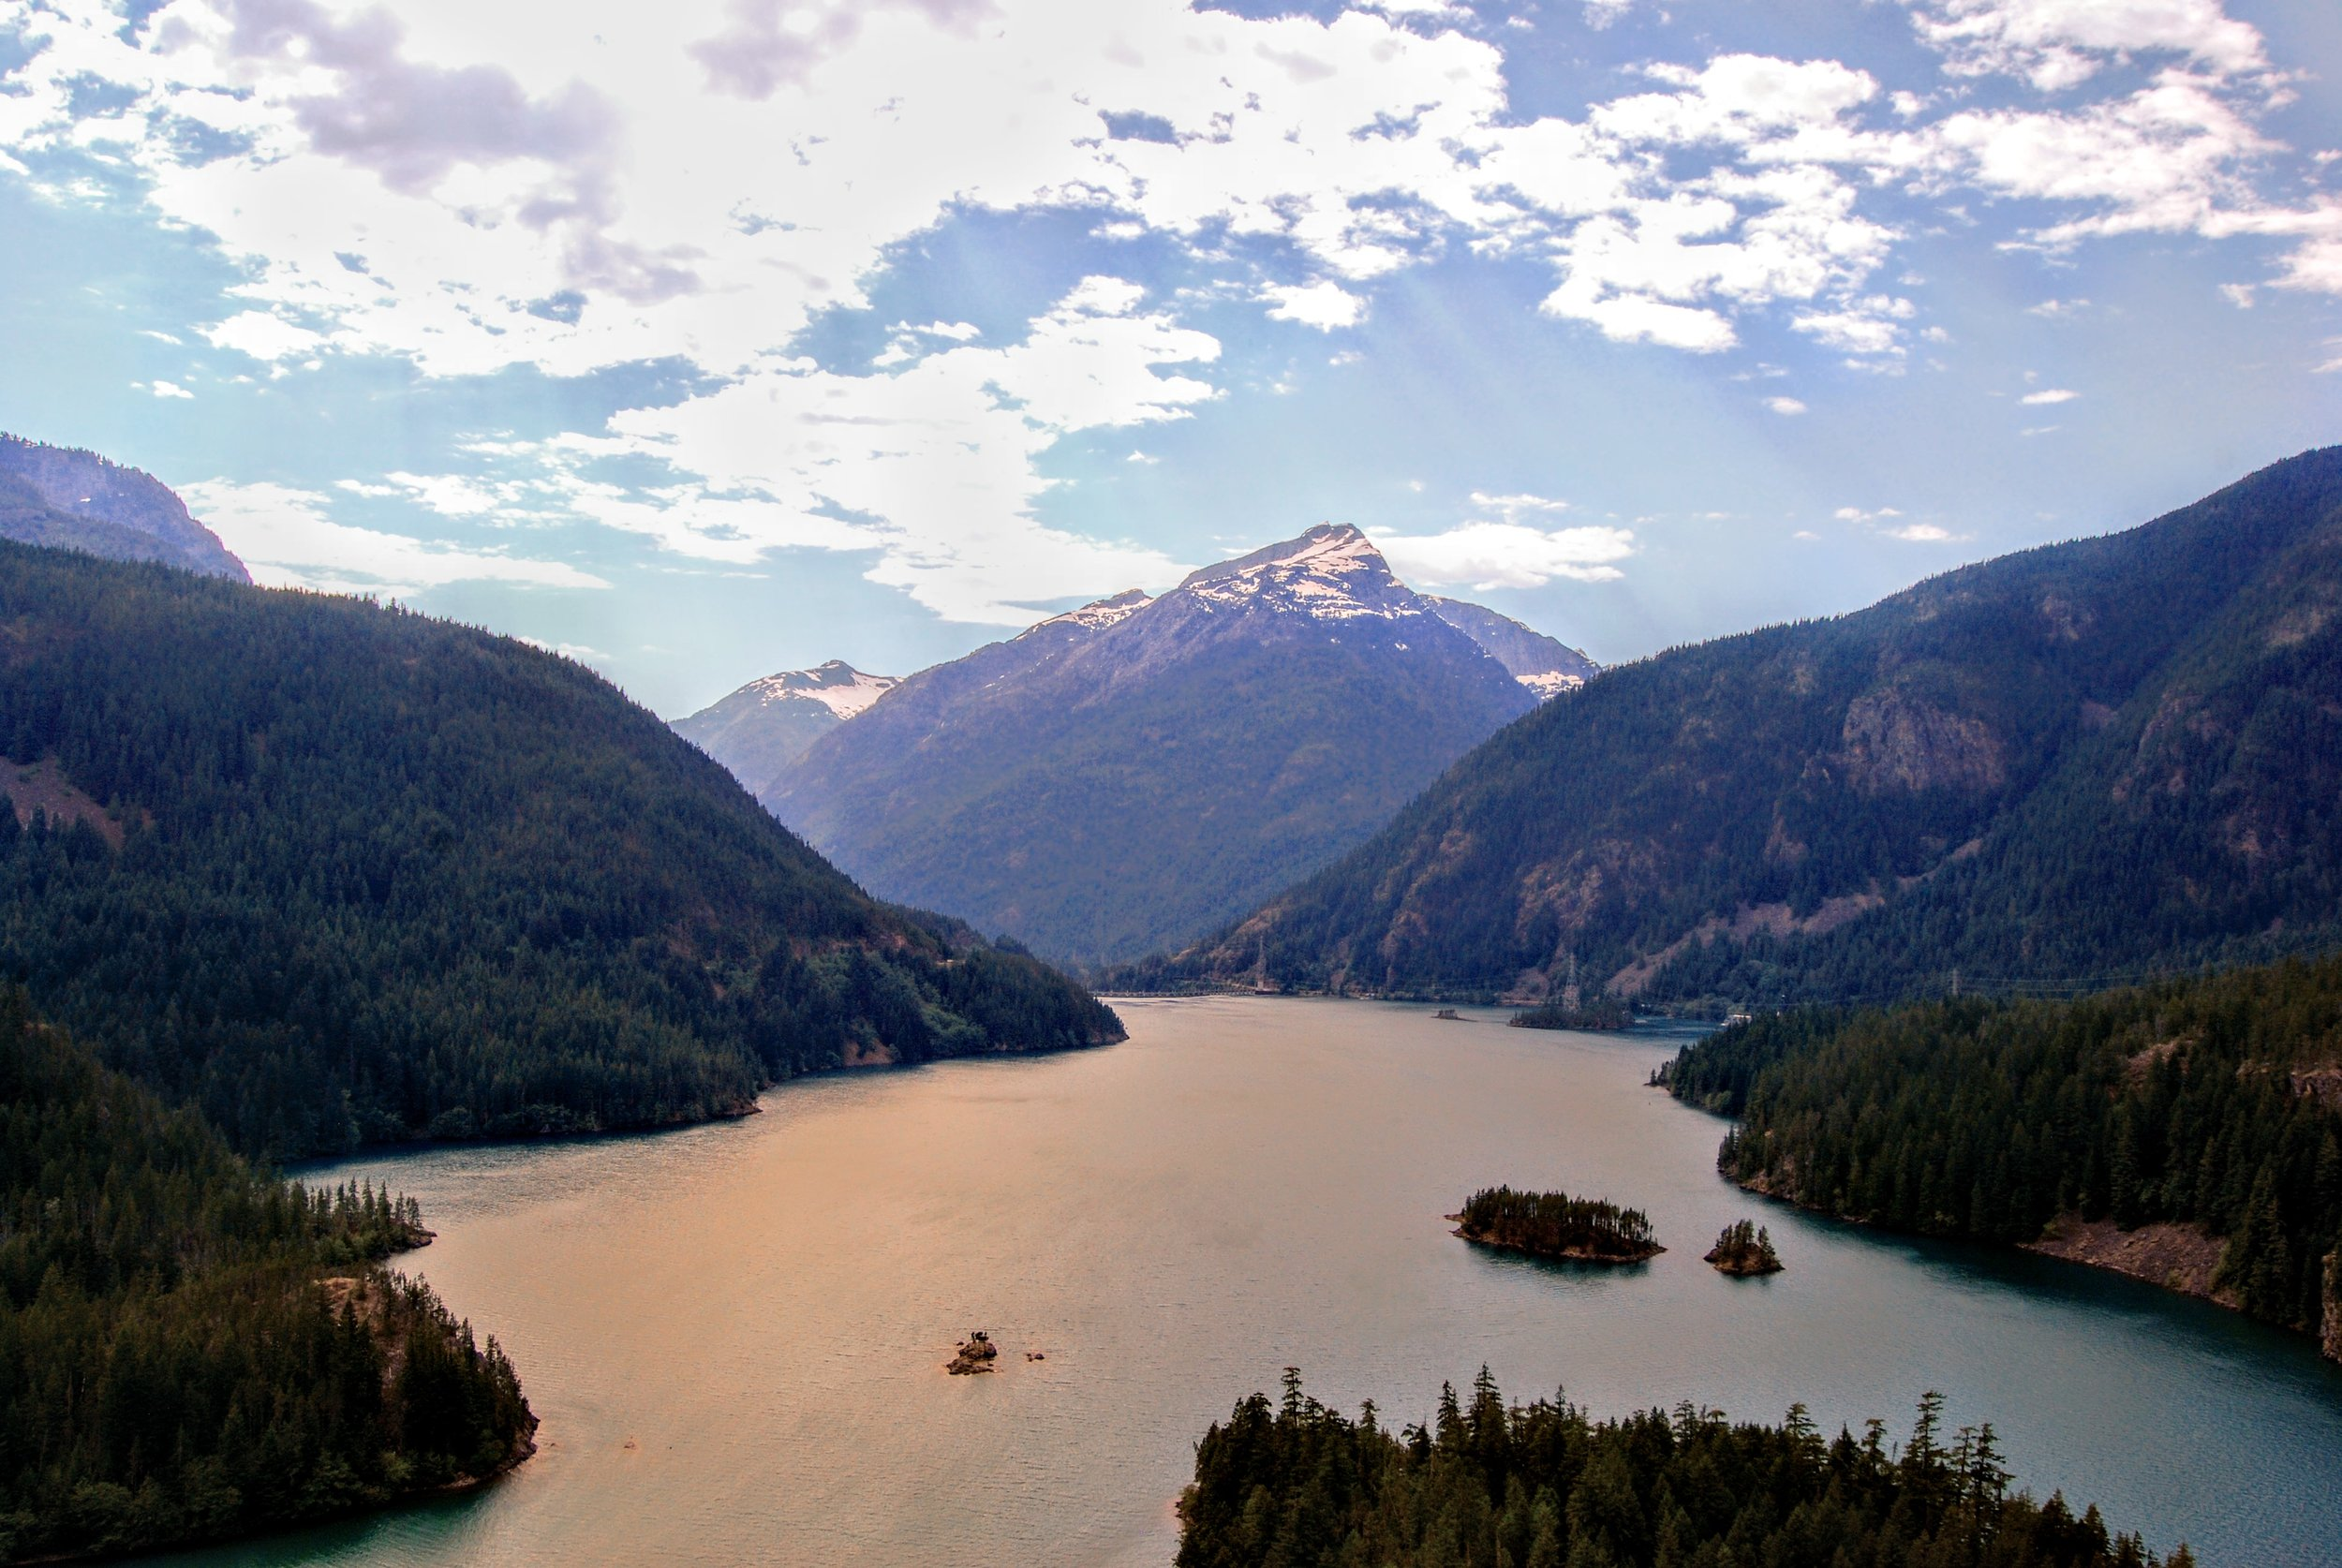 Diablo Lake in the late afternoon